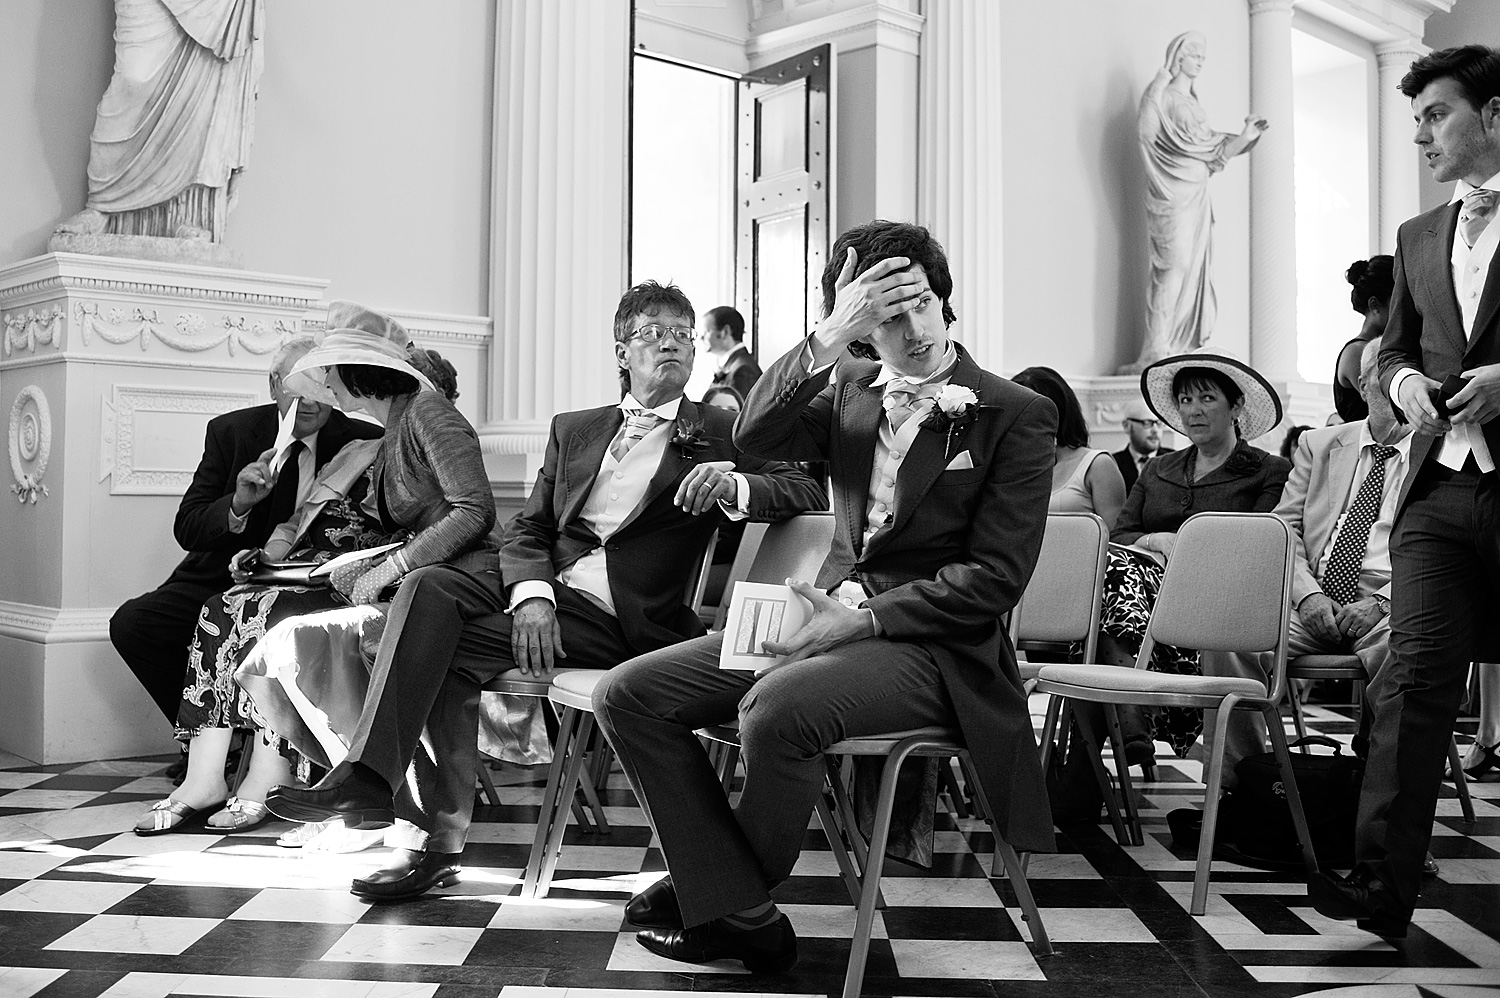 Groom wiping his brow before the wedding ceremony in hall at Syon Park